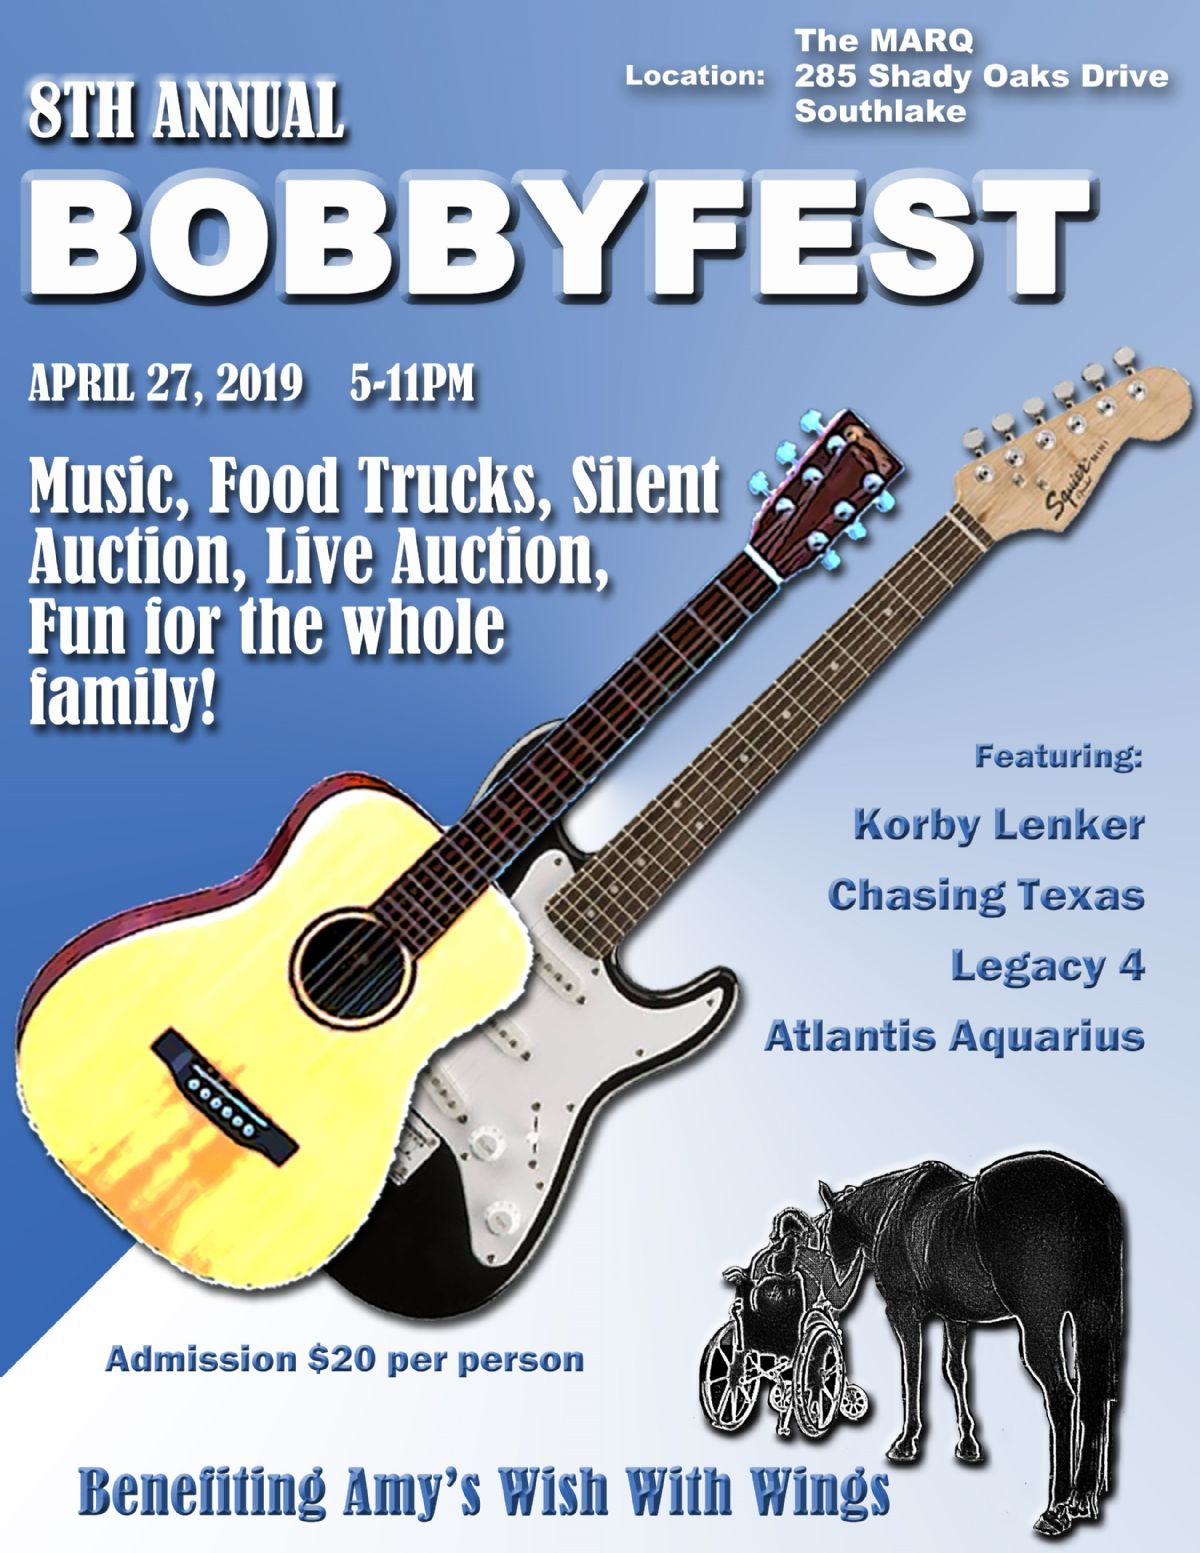 8th Annual Bobbyfest Charity Music Festival